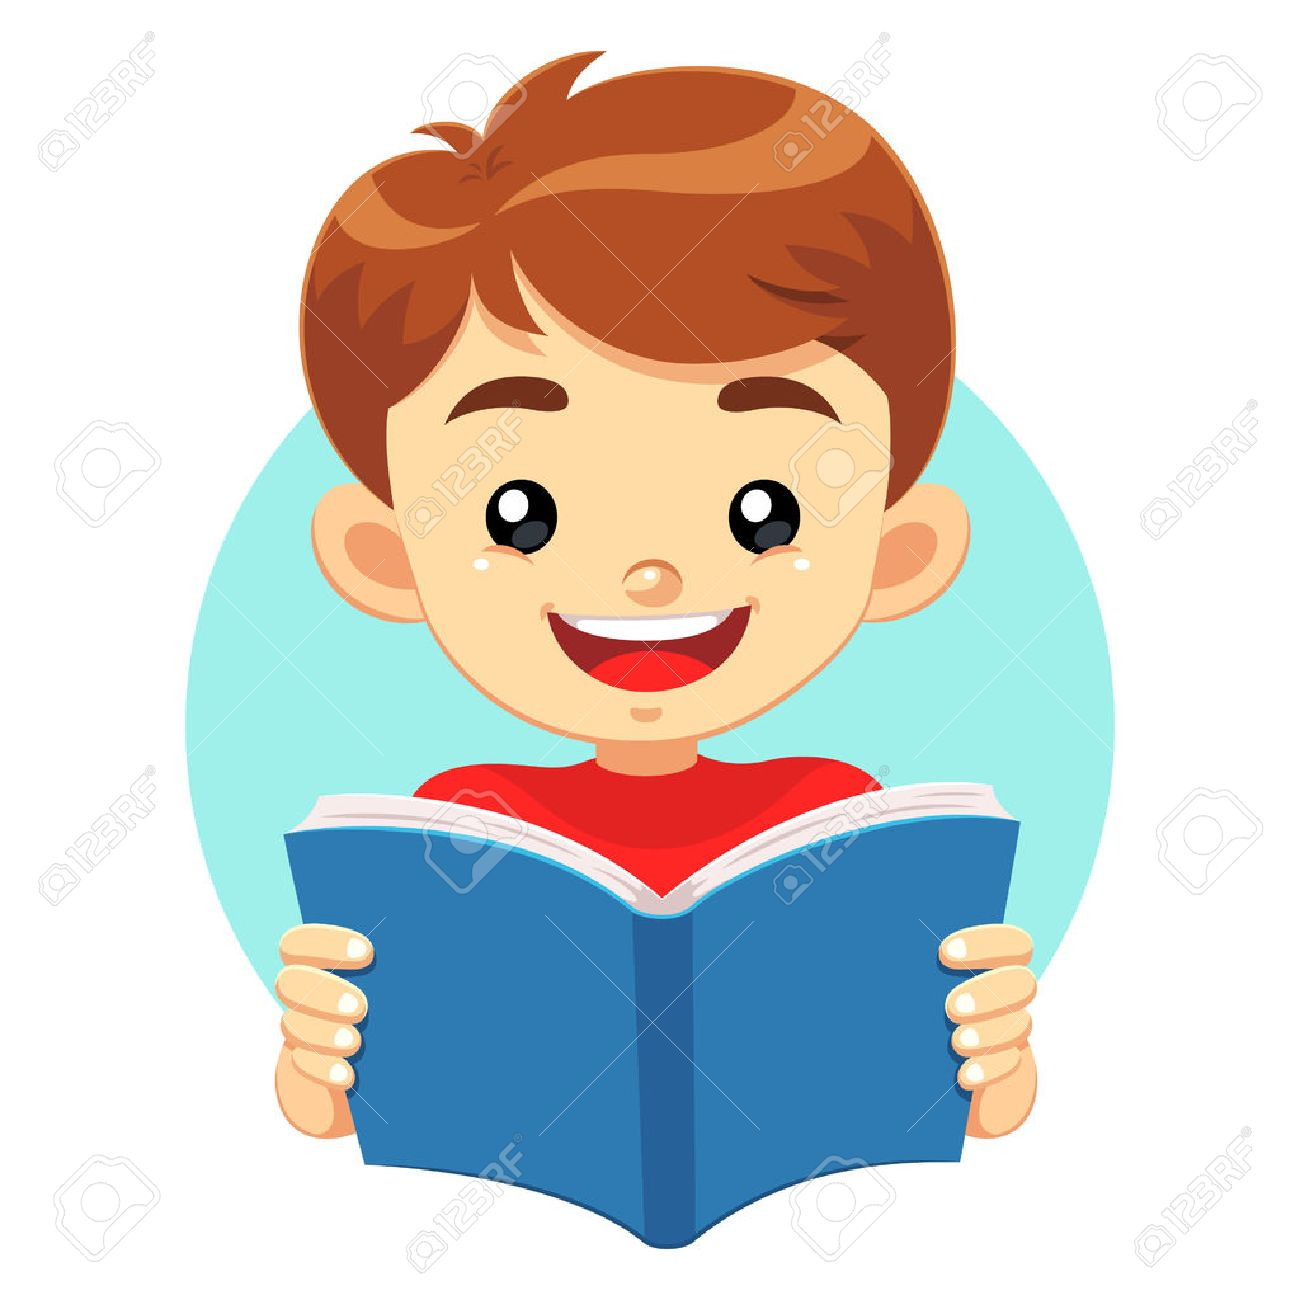 Little Boy Reading A Blue Book. A little cute boy reading a blue book with happy face. He like to read and study educational books. Stock Vector - 39495461